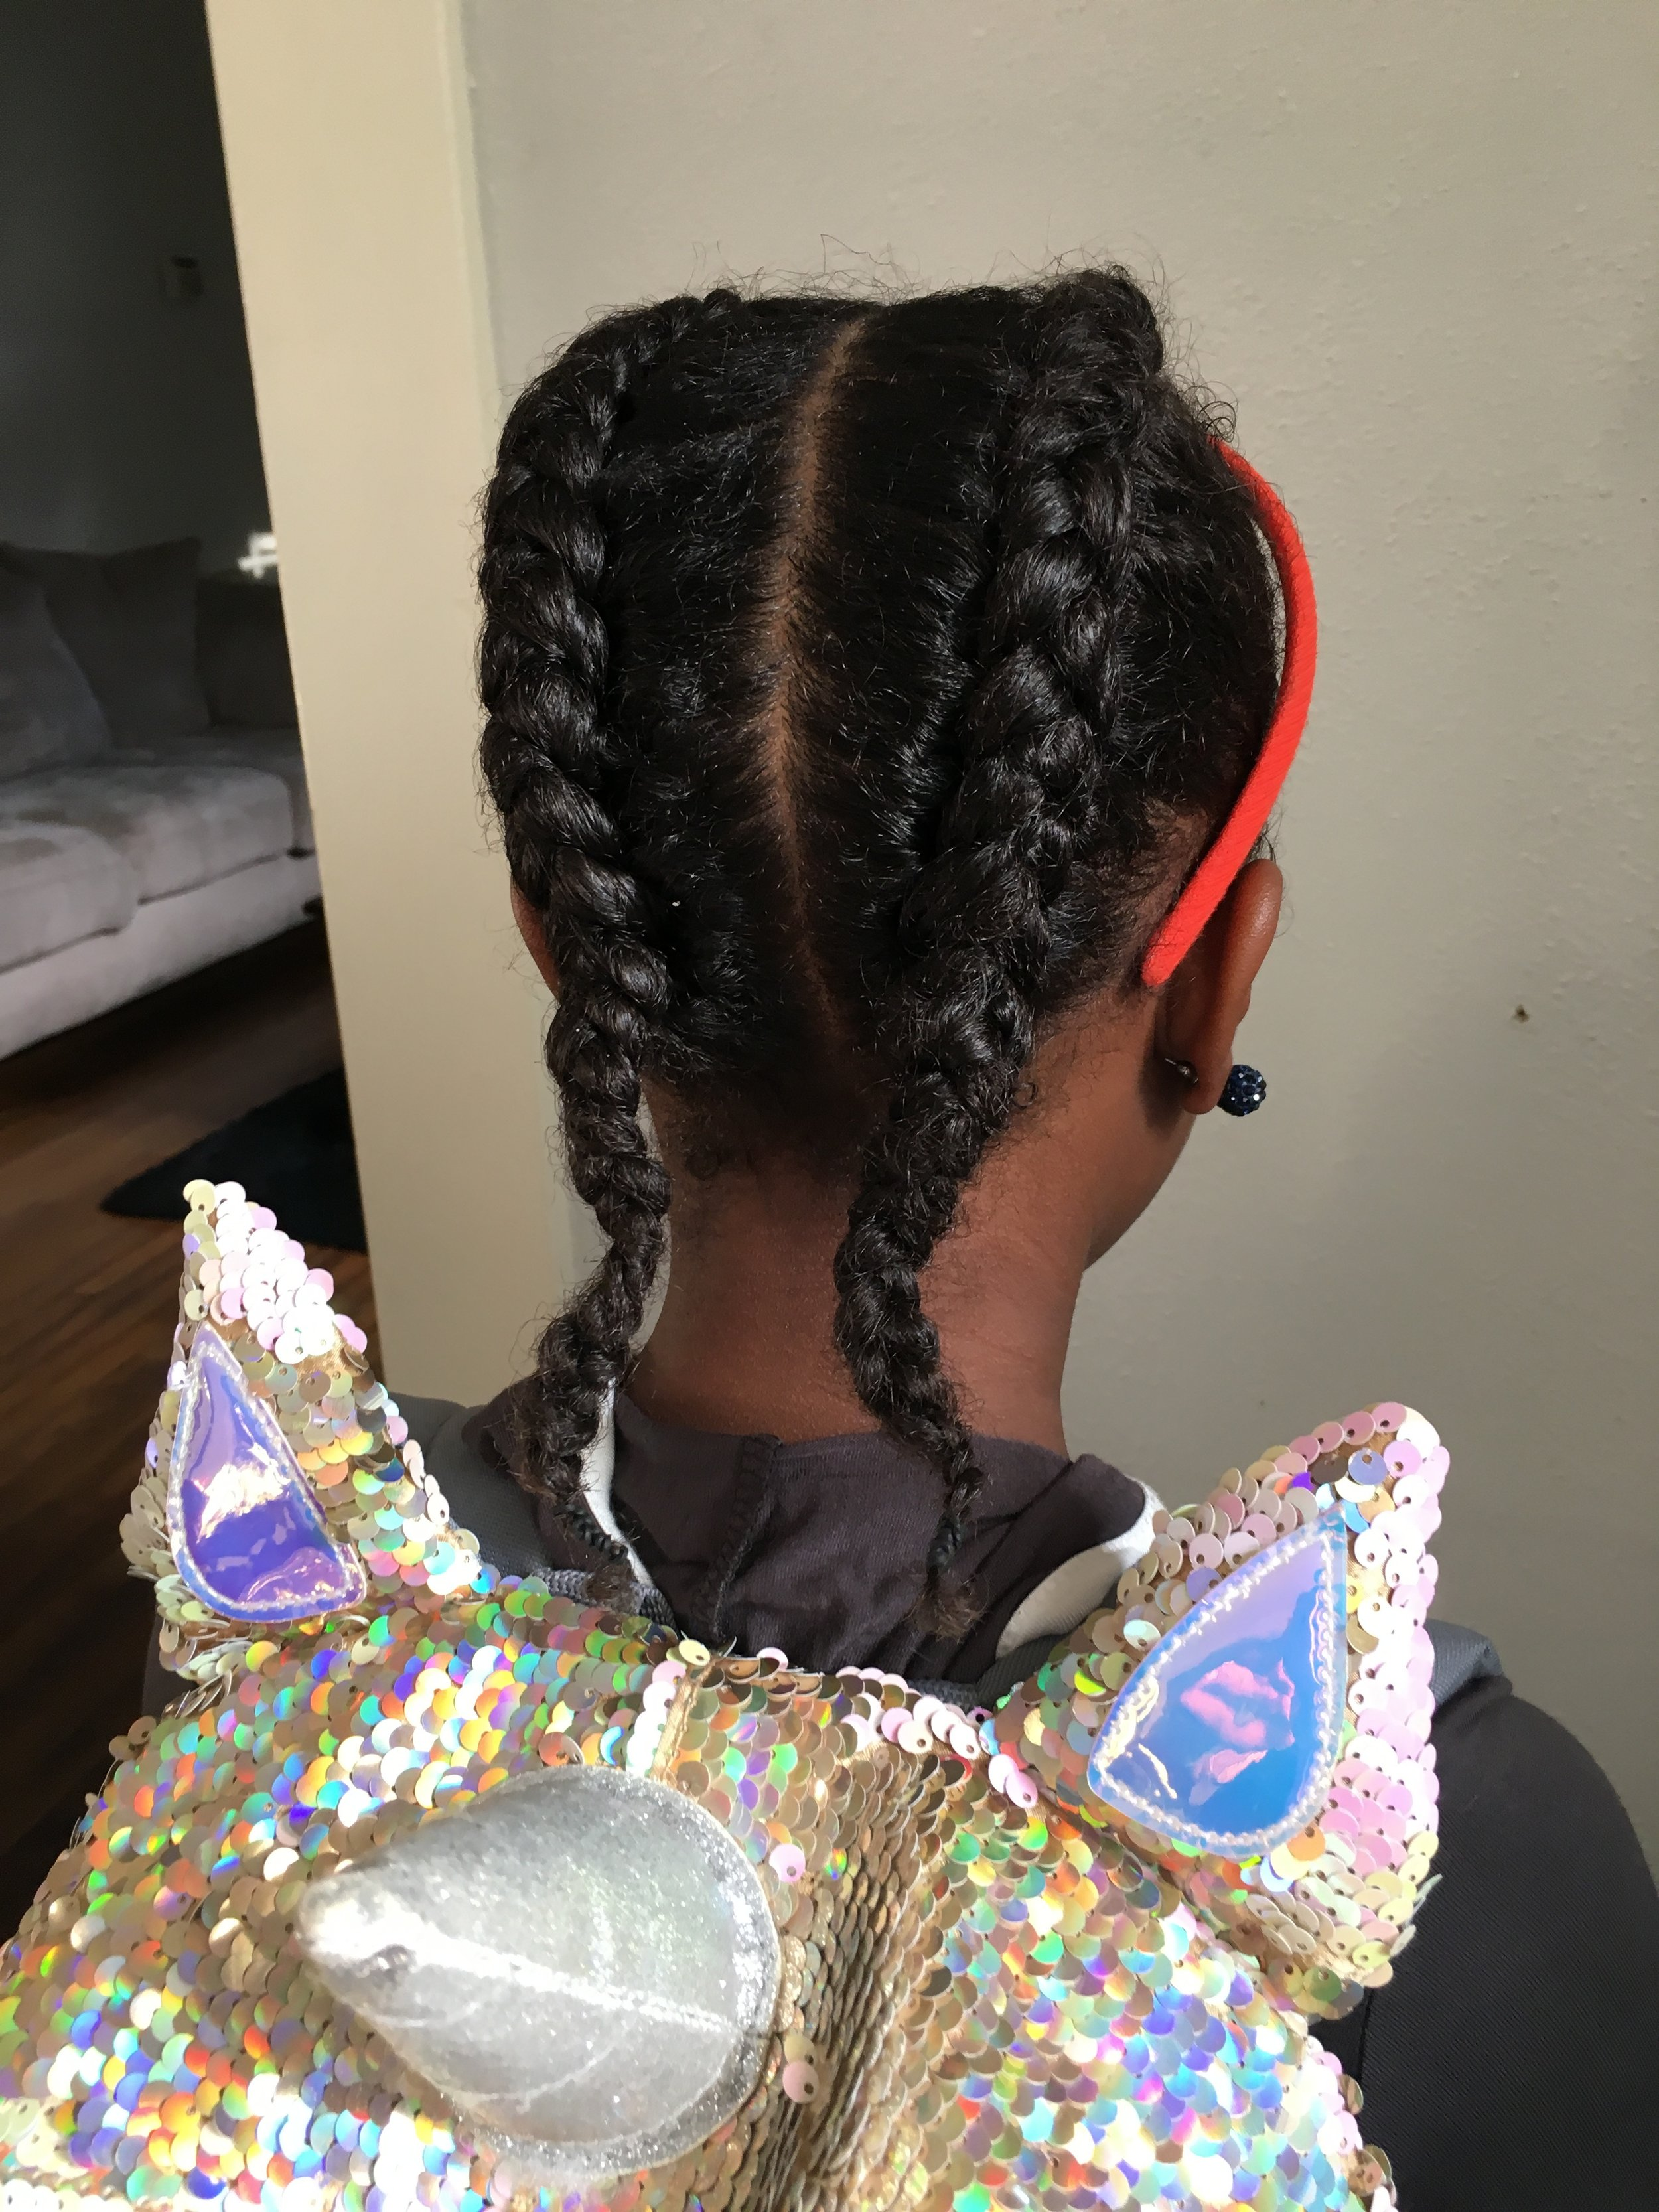 Andrea Fenise Memphis Wellness Blogger and Natural Hair Blogger shares healthy hair journey